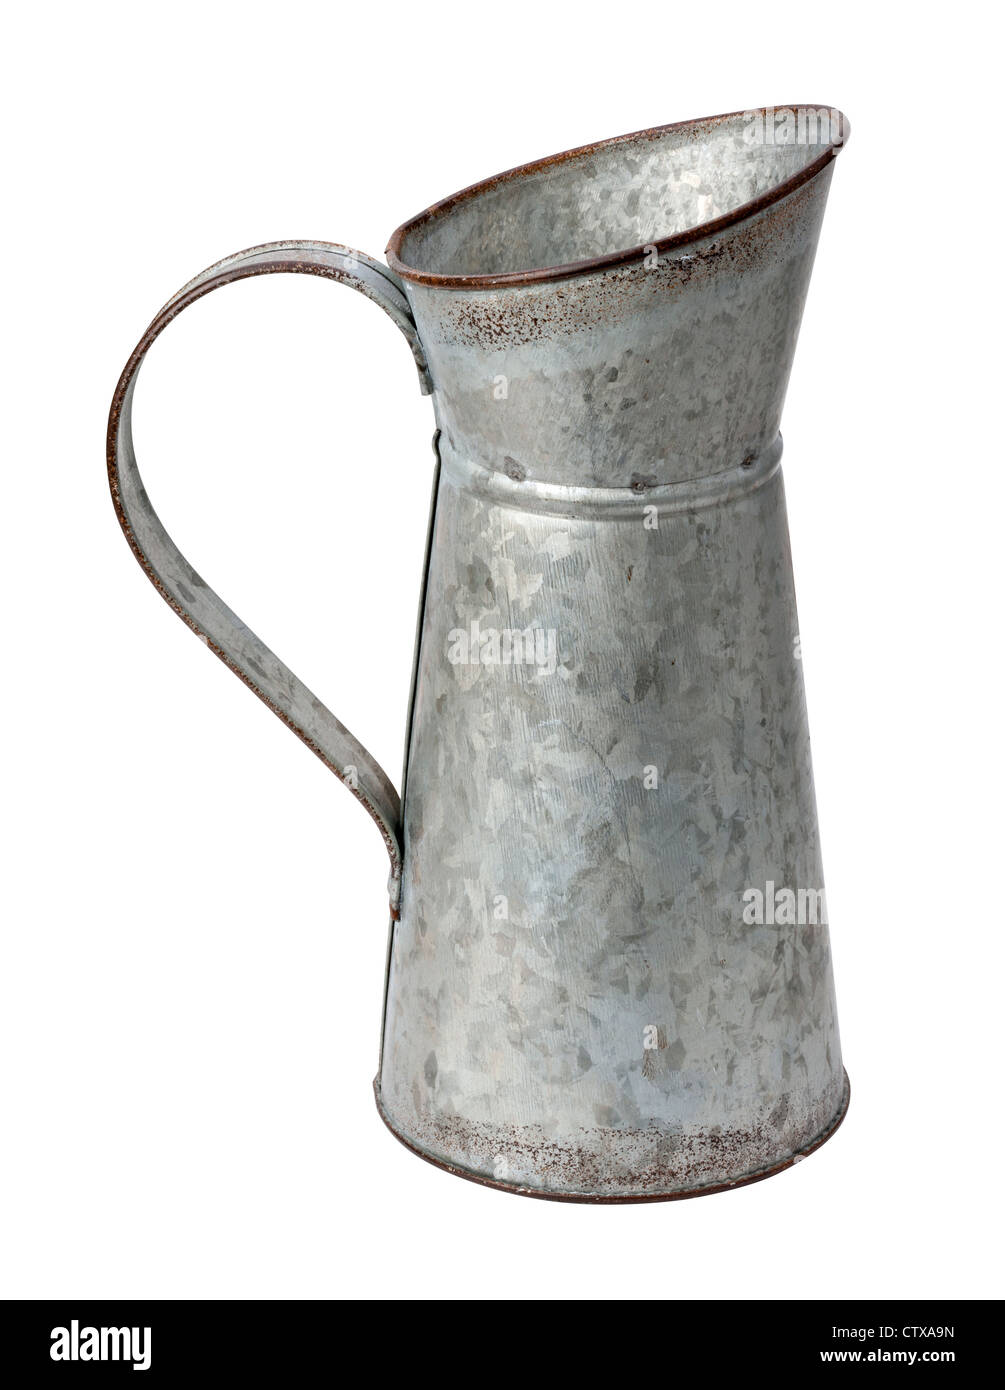 Galvanized Pitcher Isolated on a white background. - Stock Image